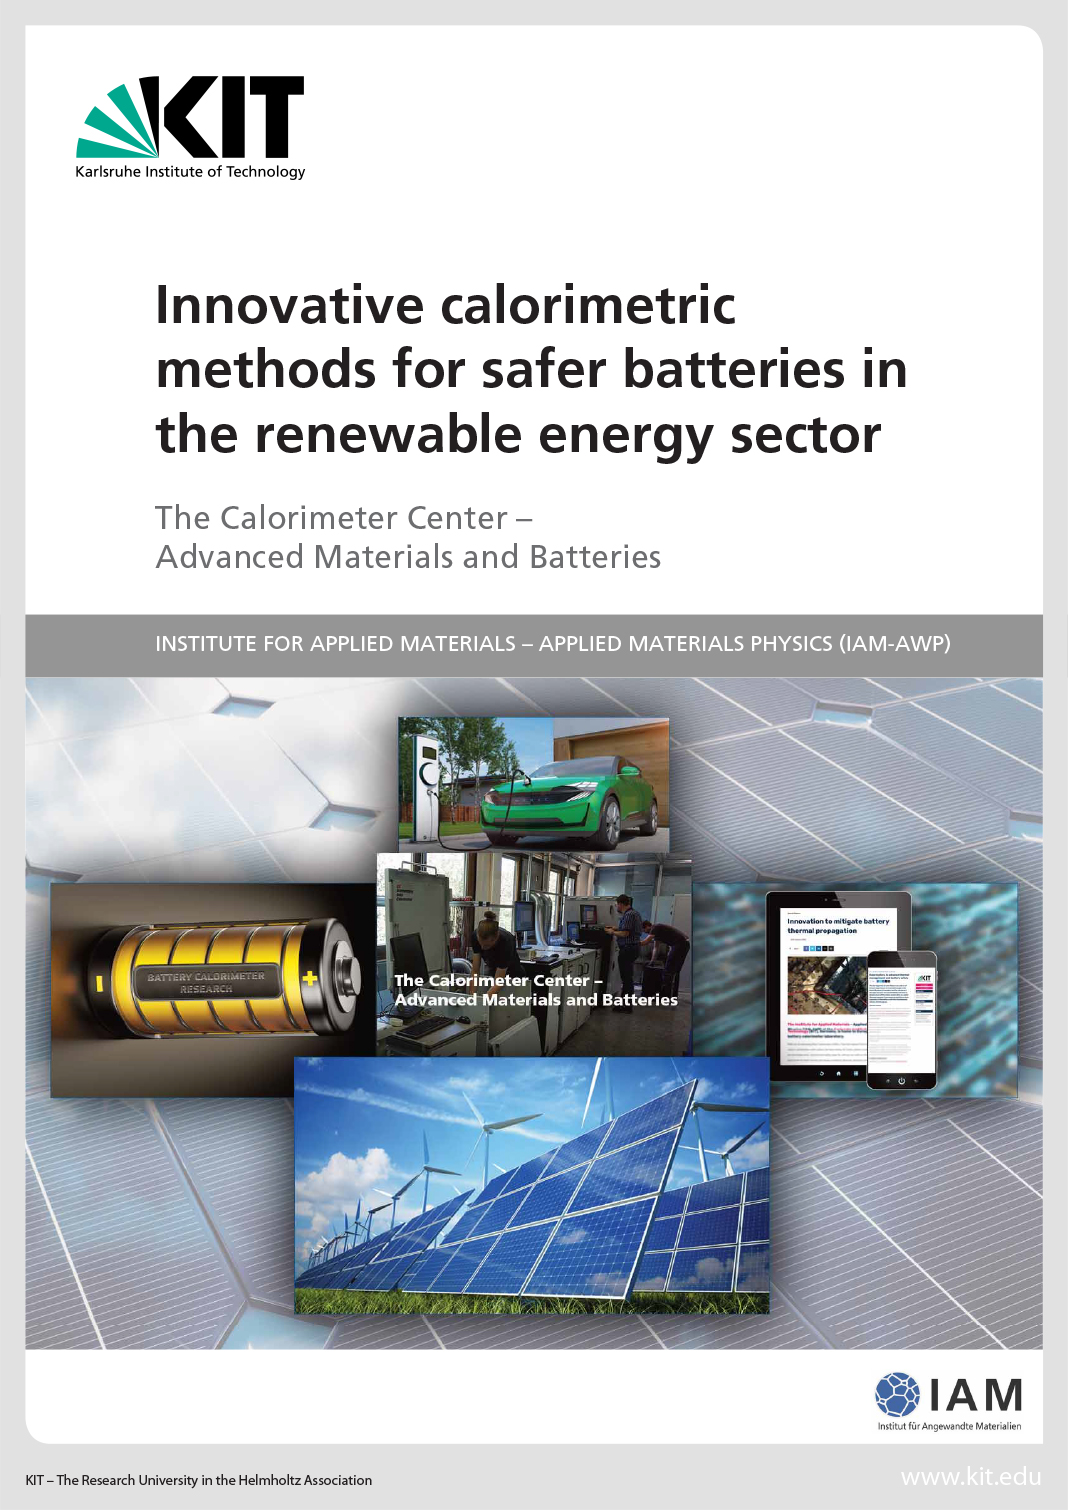 Innovation in batteries to support the renewable energy industry